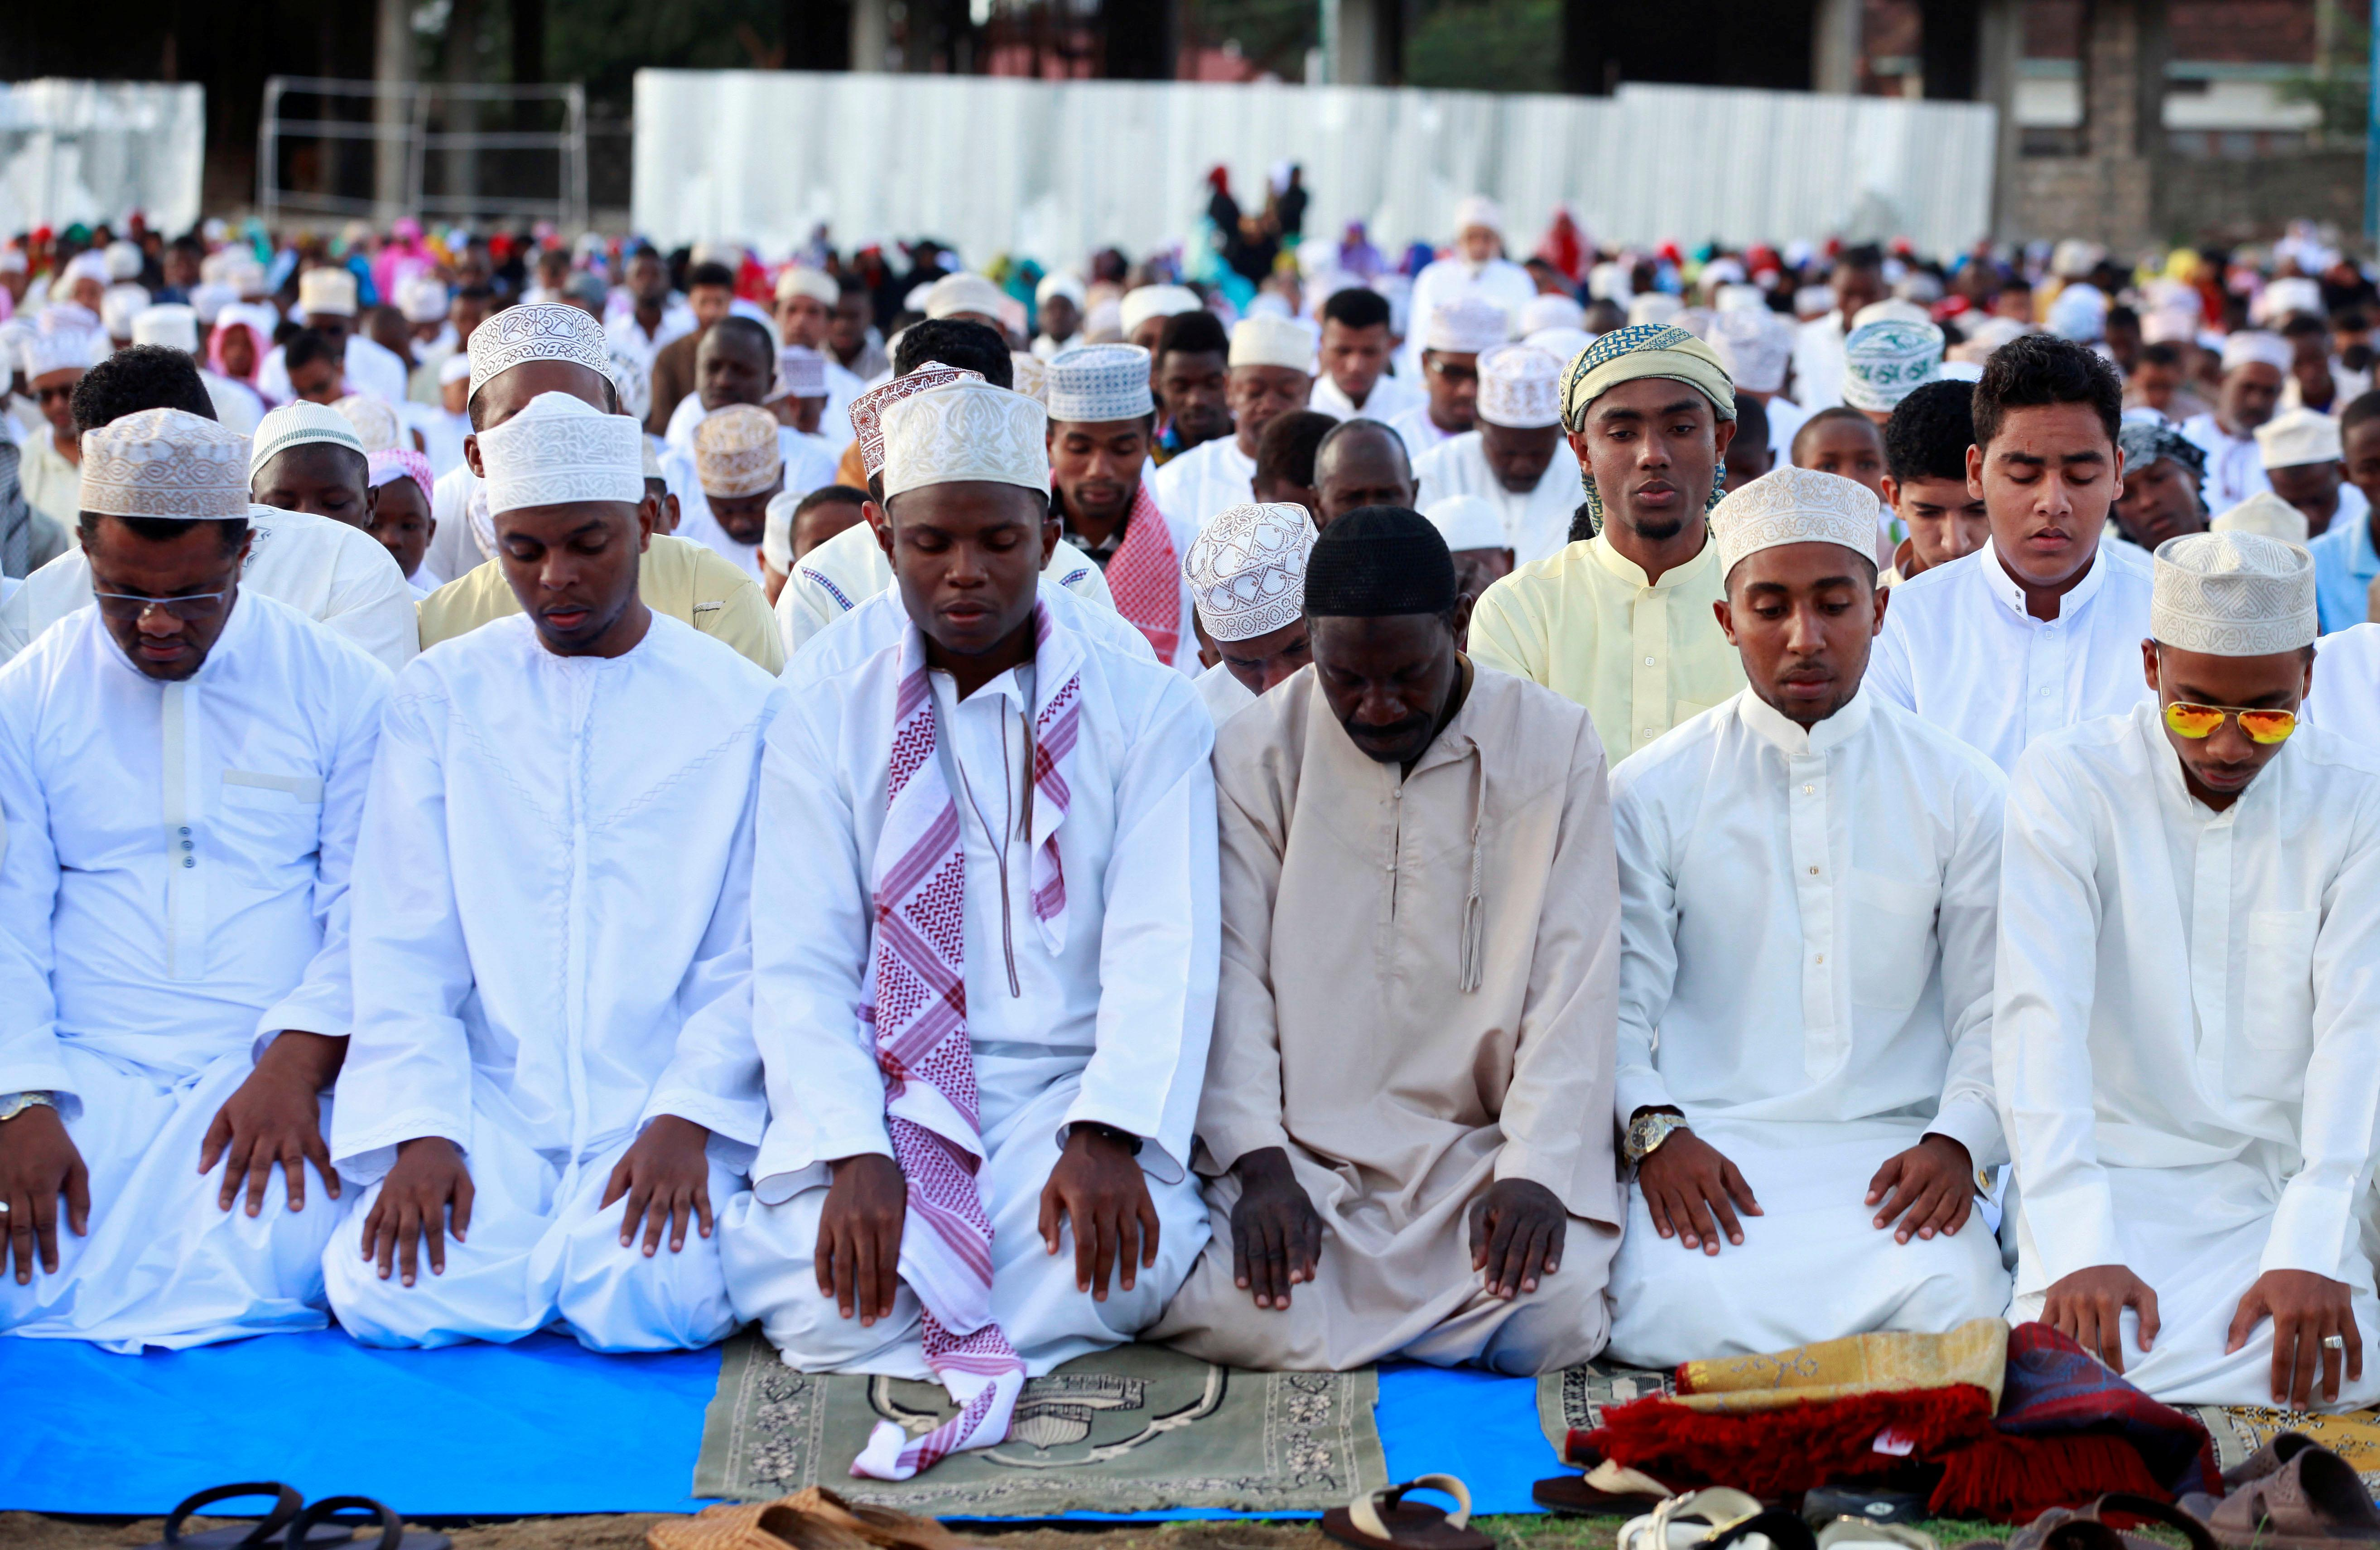 Muslims attend an Eid al-Adha mass prayer marking the end of the annual Hajj pilgrimage, in Mombasa, Kenya